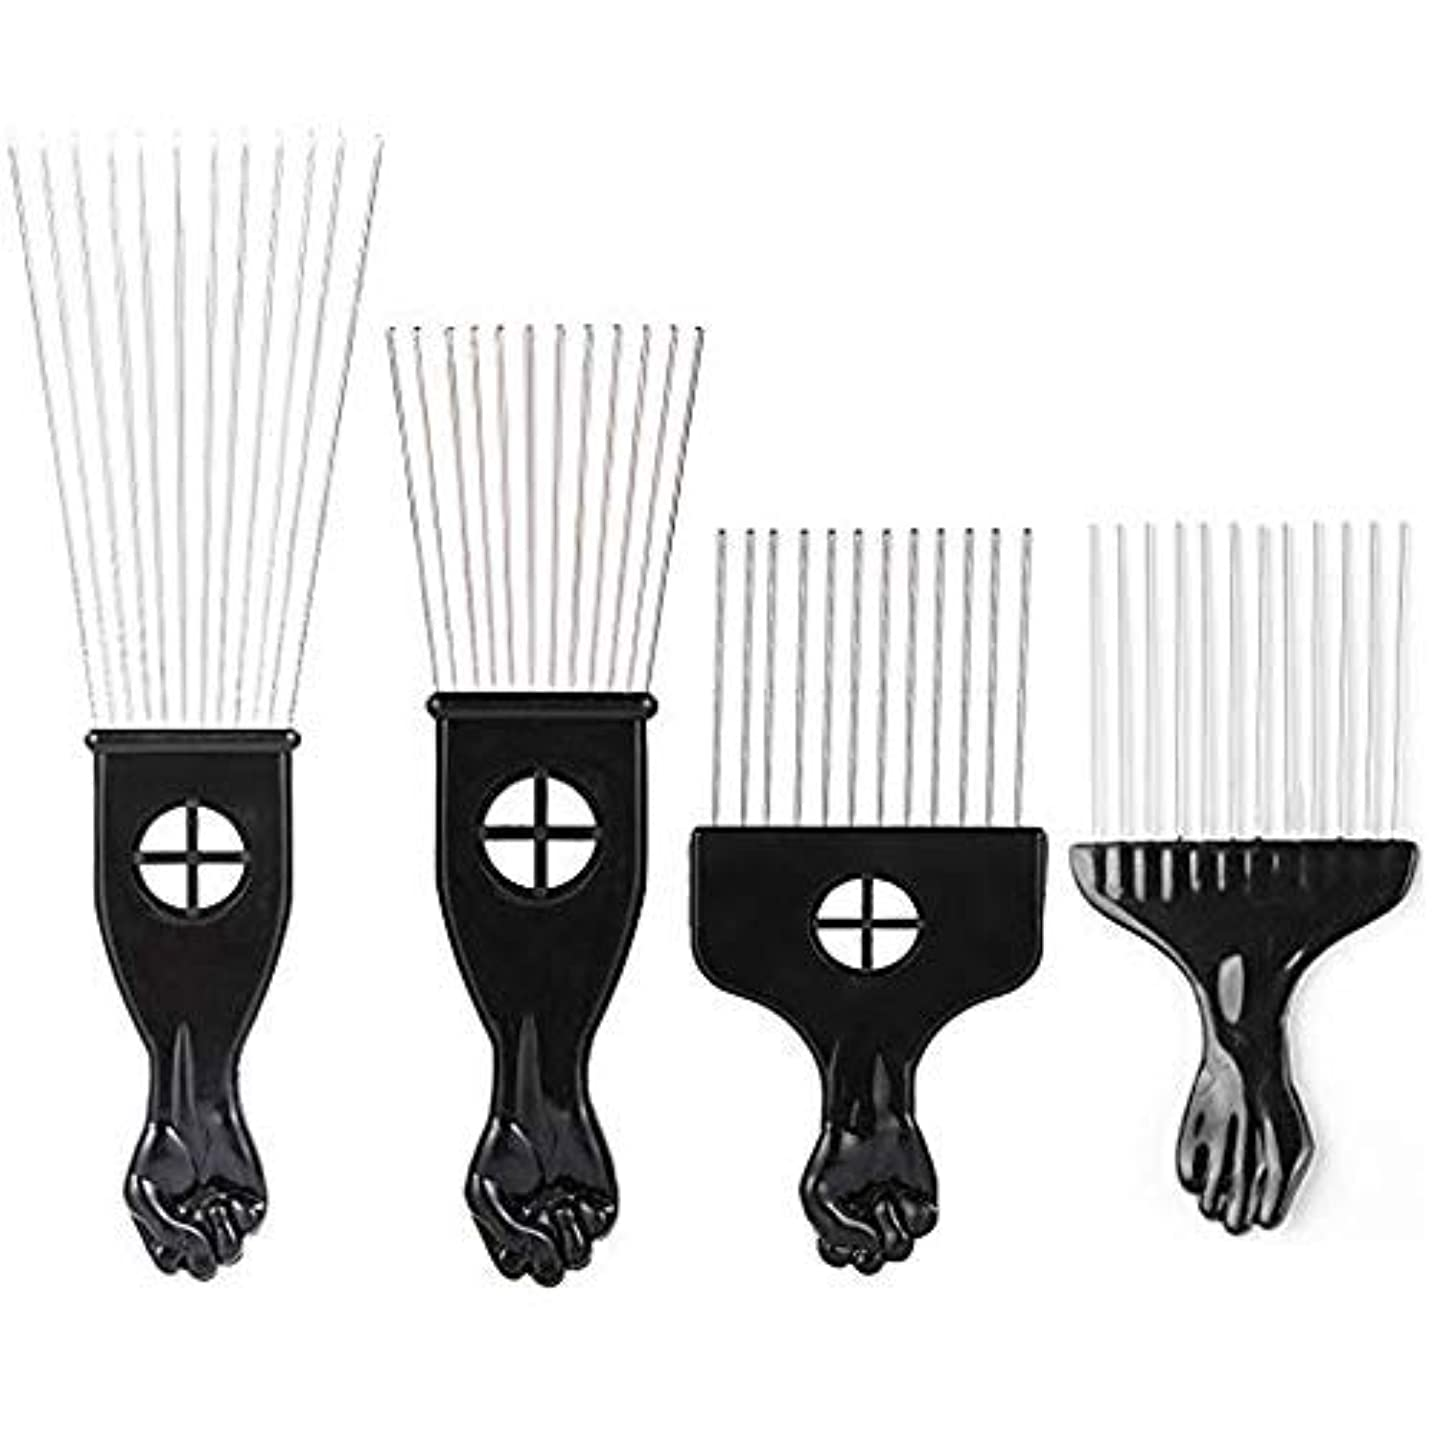 Borogo Afro Combs, 4-Pack Afro Pick w/Black Fist - Metal African American Pick Comb Straight Hair Brush Hairdressing...